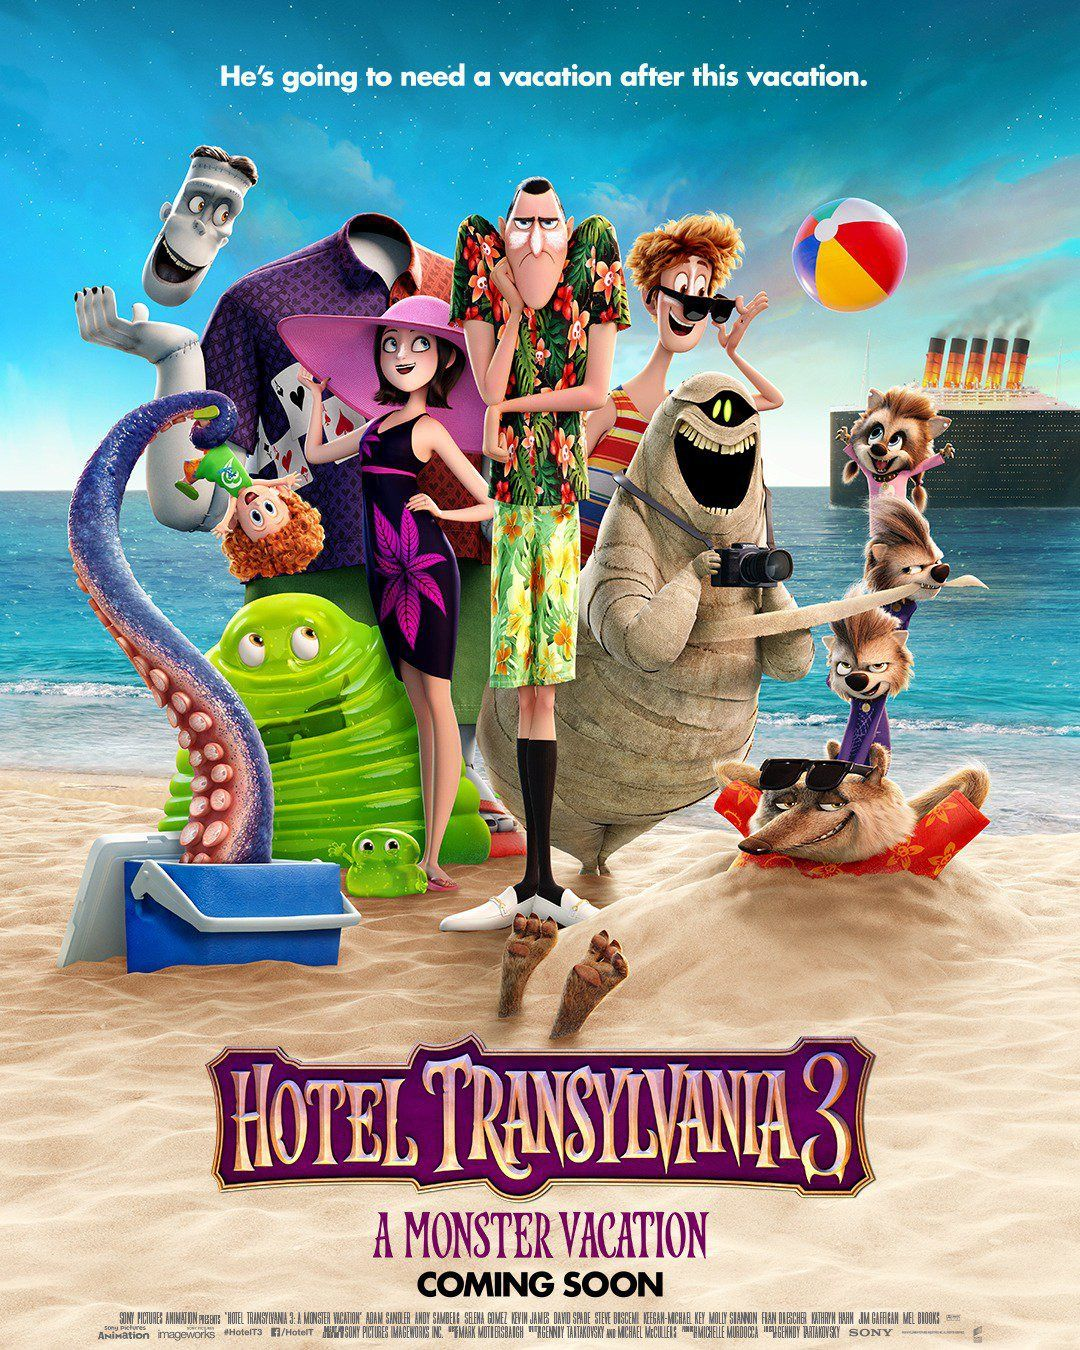 Hotel Transylvania 3 New Film Poster Https Teaser Trailer Com